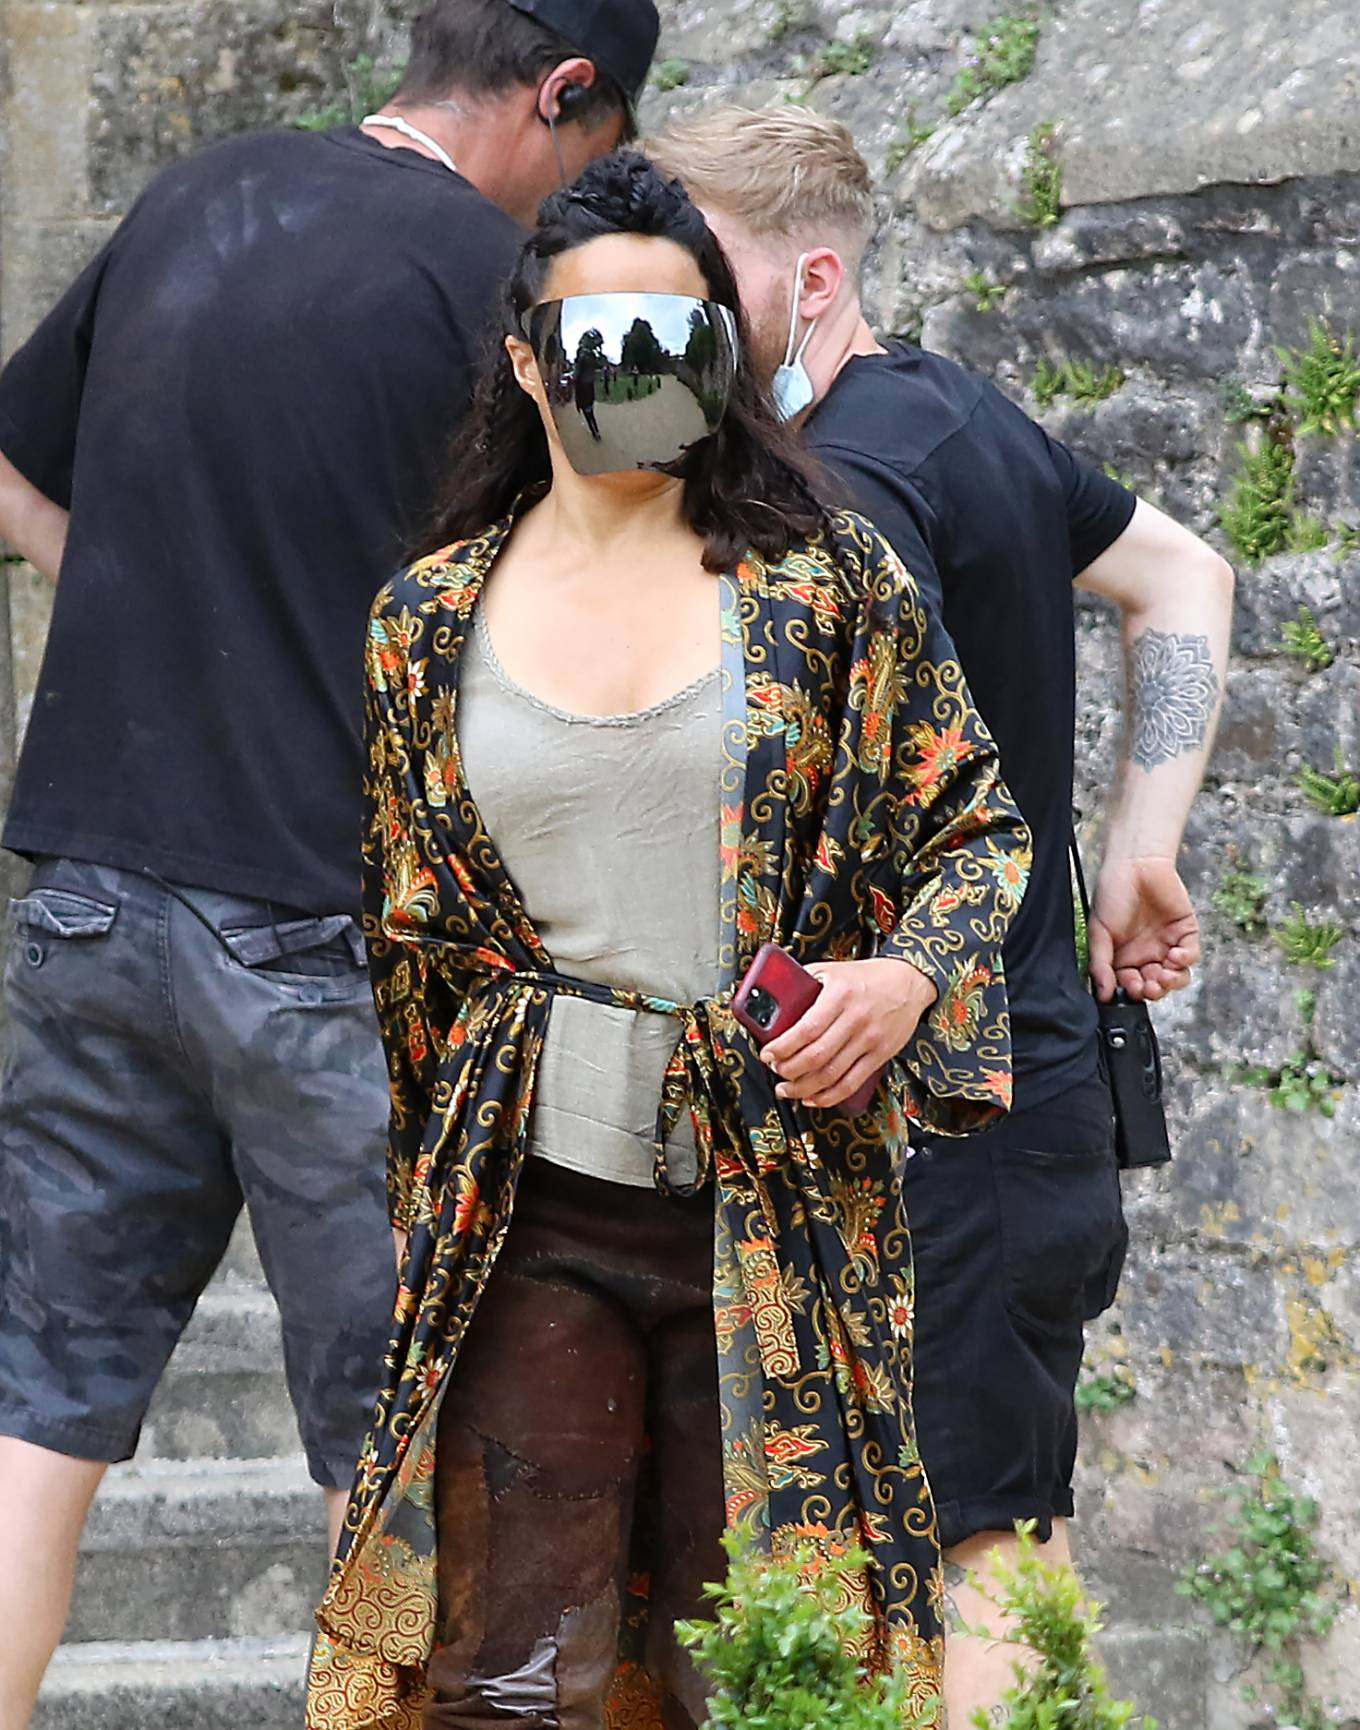 Michelle Rodriguez - Spotted on the set of 'Dungeons and Dragons' at Wells Cathedral in Somerset